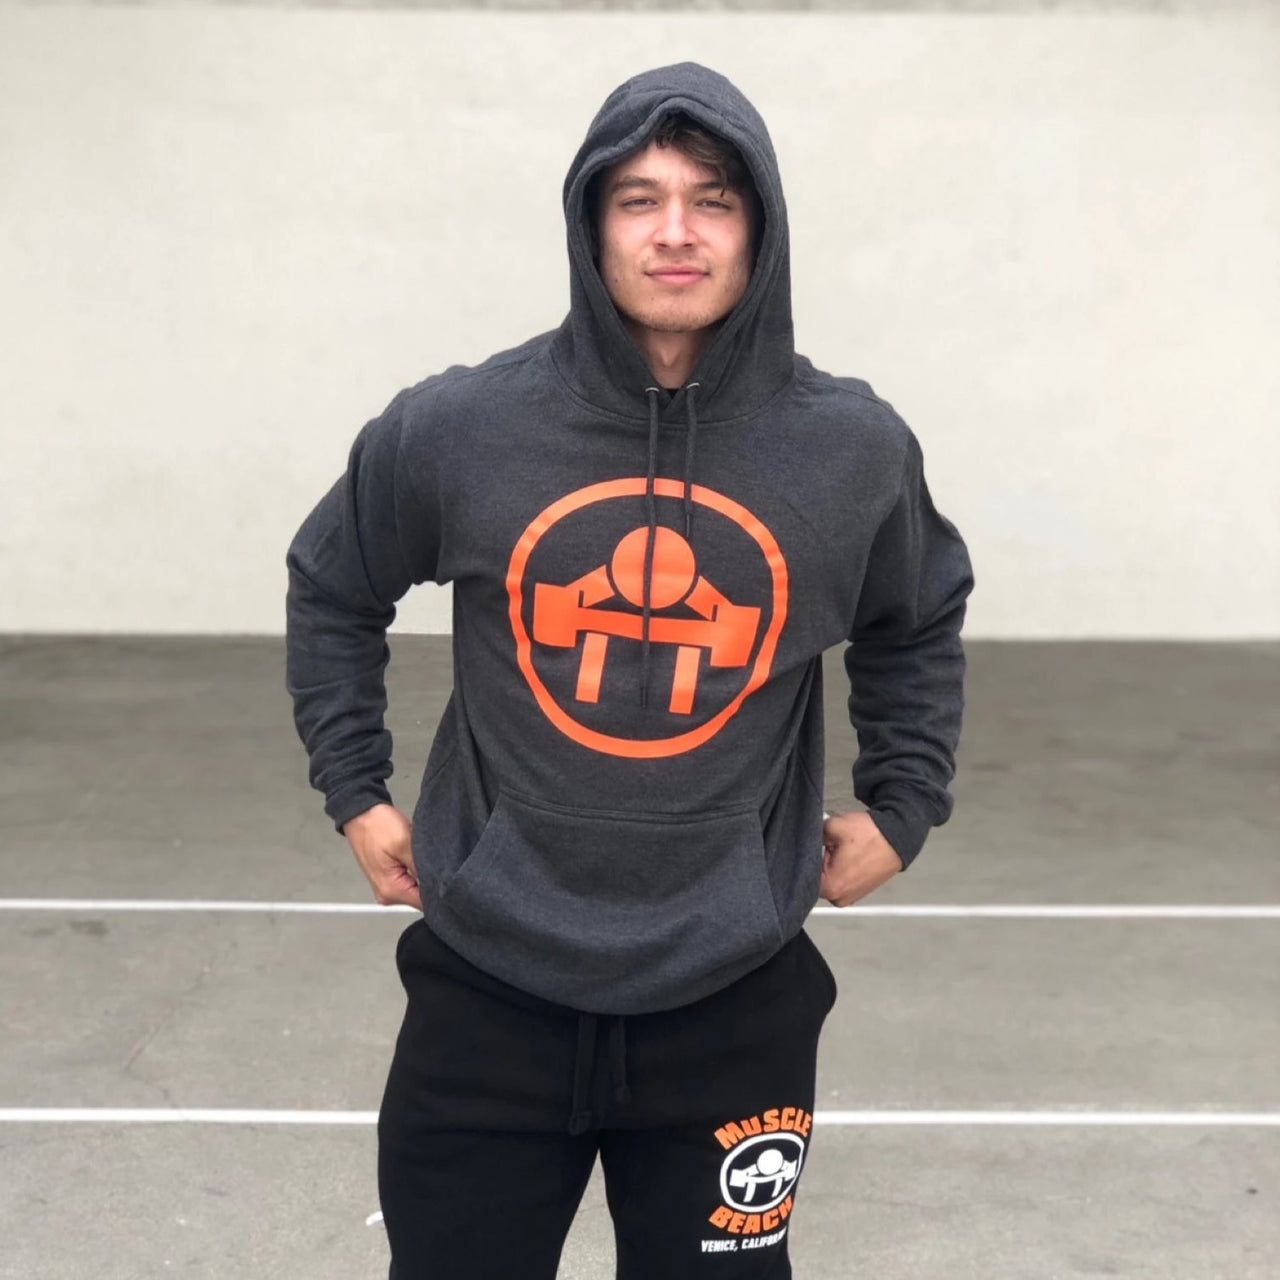 CIRCLE LOGO SWEATSHIRT - Muscle Beach